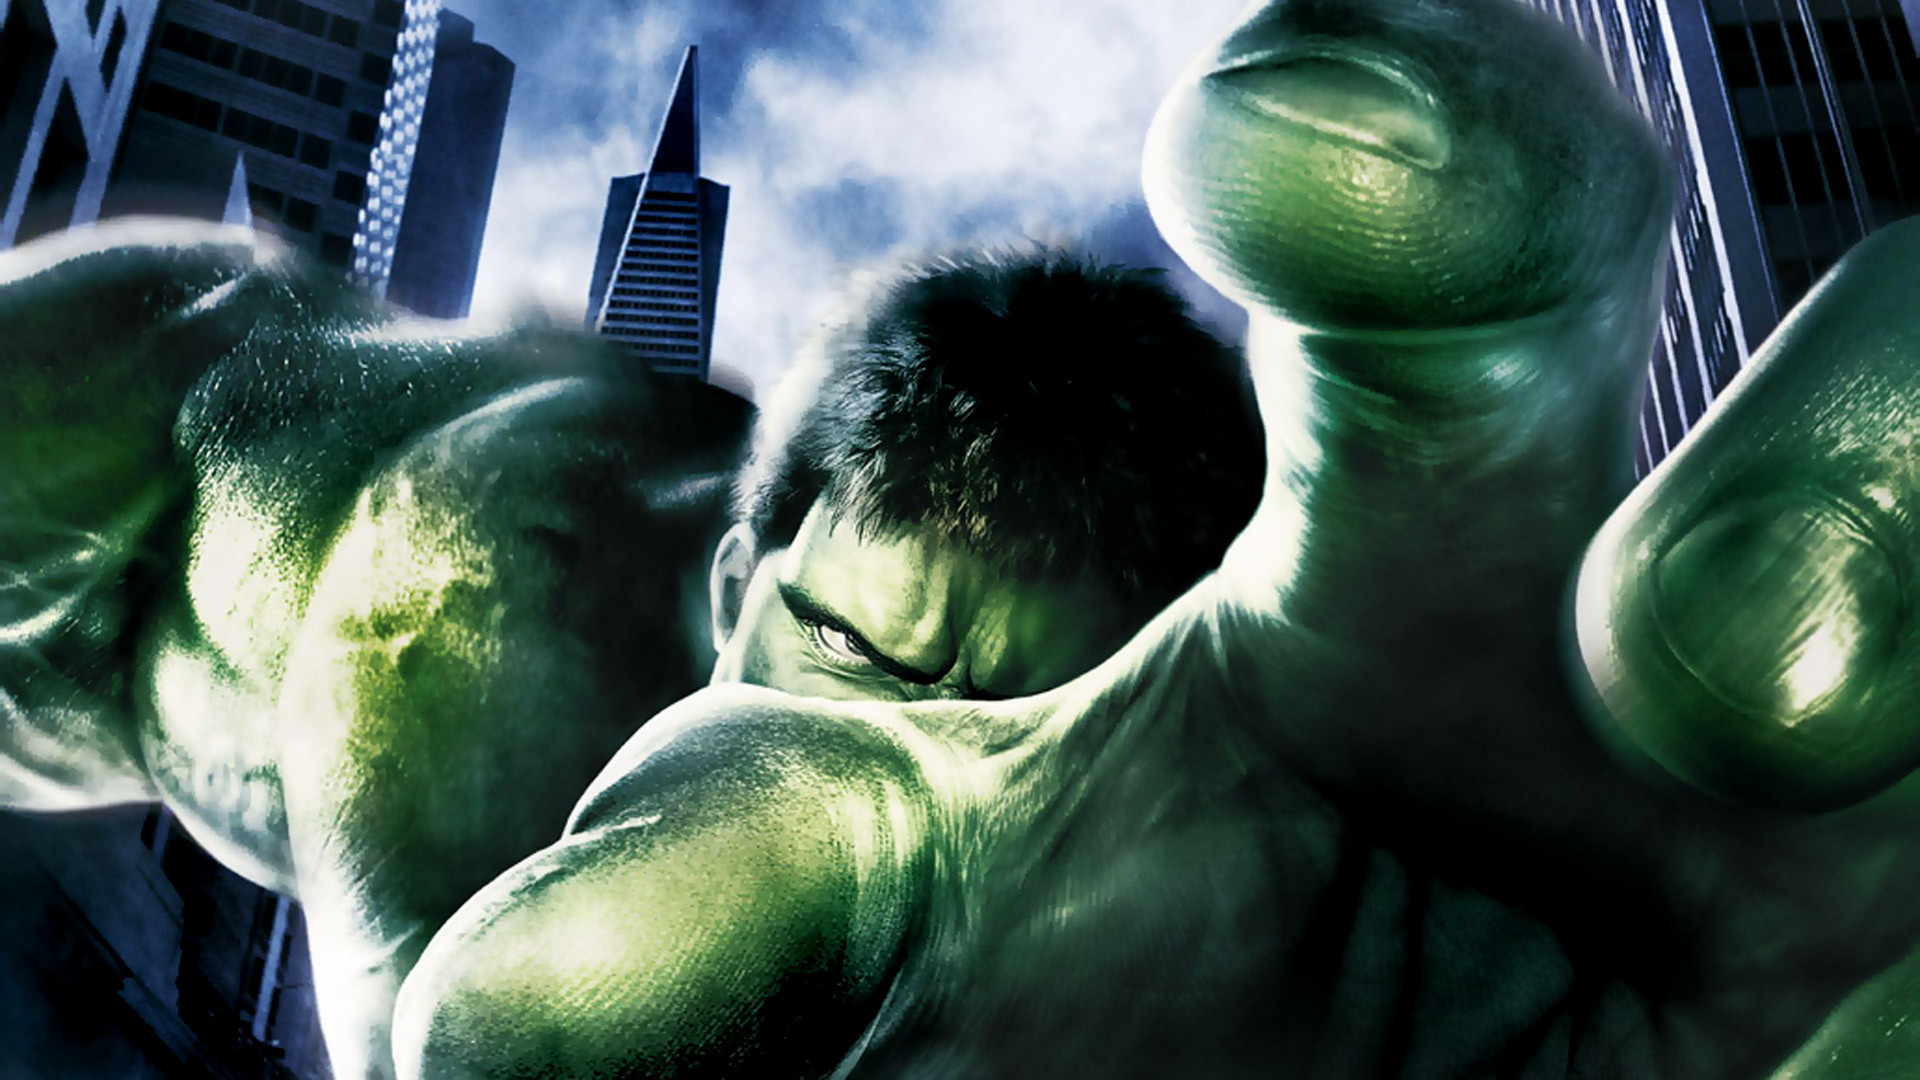 1920x1080 Hulk Movie Wallpapers Hulk Movie Wallpapers HD Wallpapers